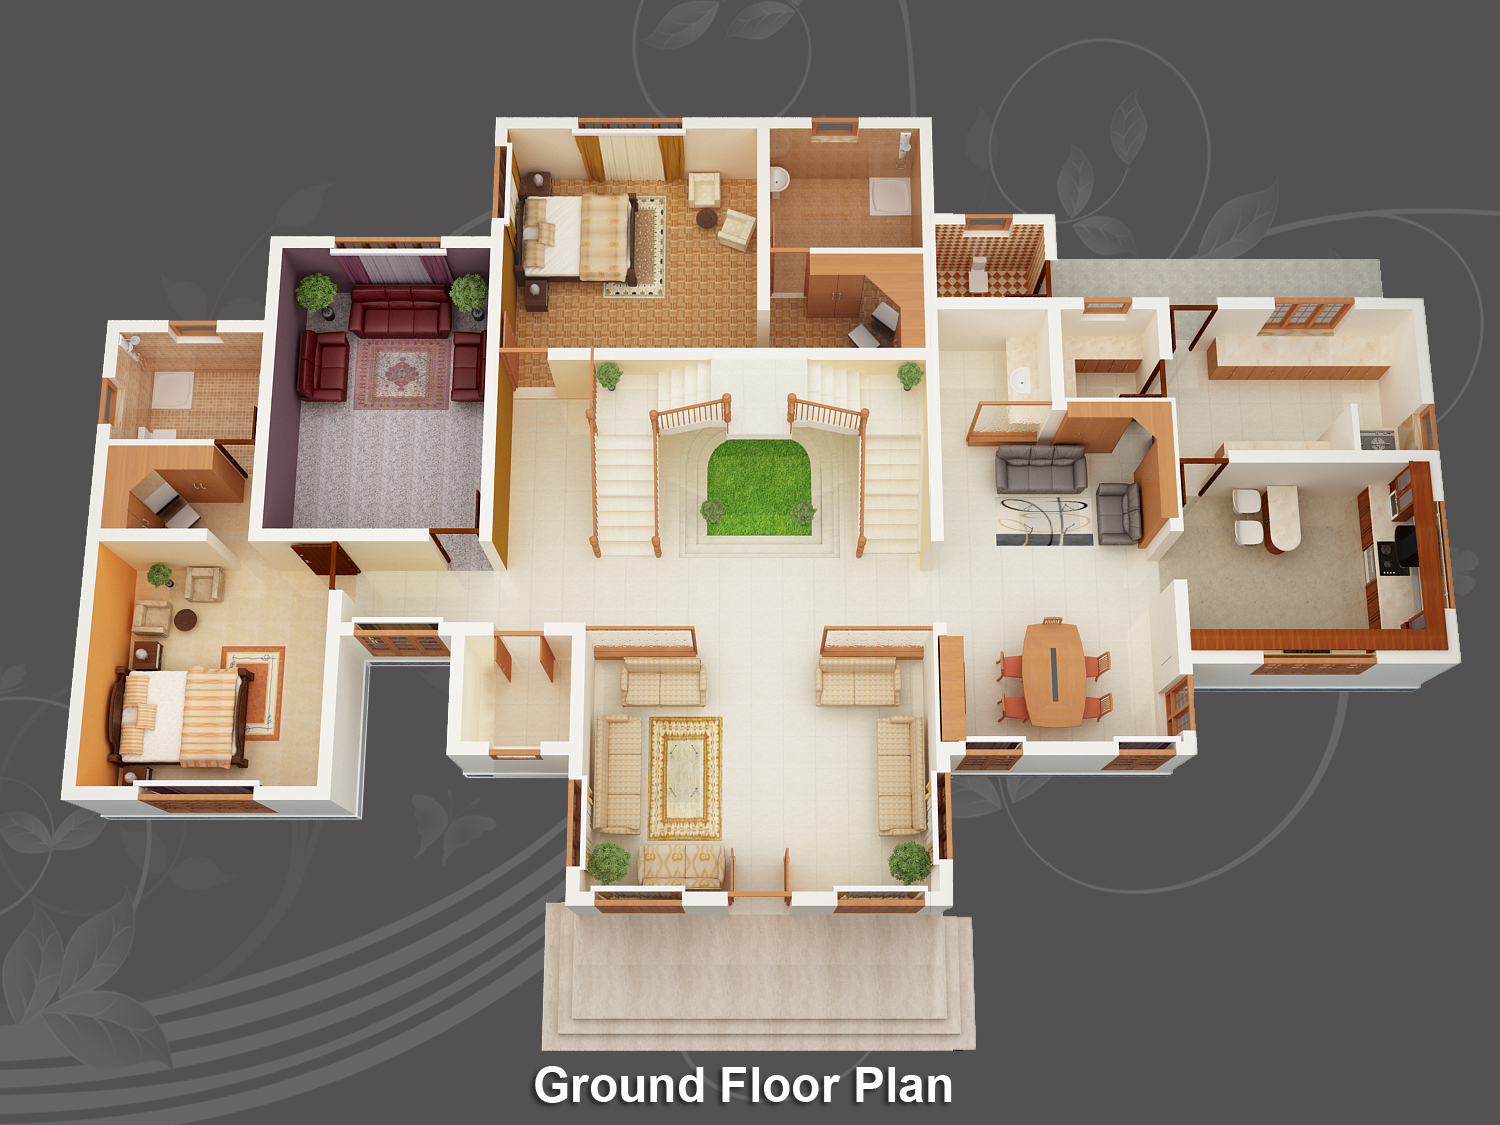 Evens construction pvt ltd 3d house plan 20 05 2011 for In plan 3d